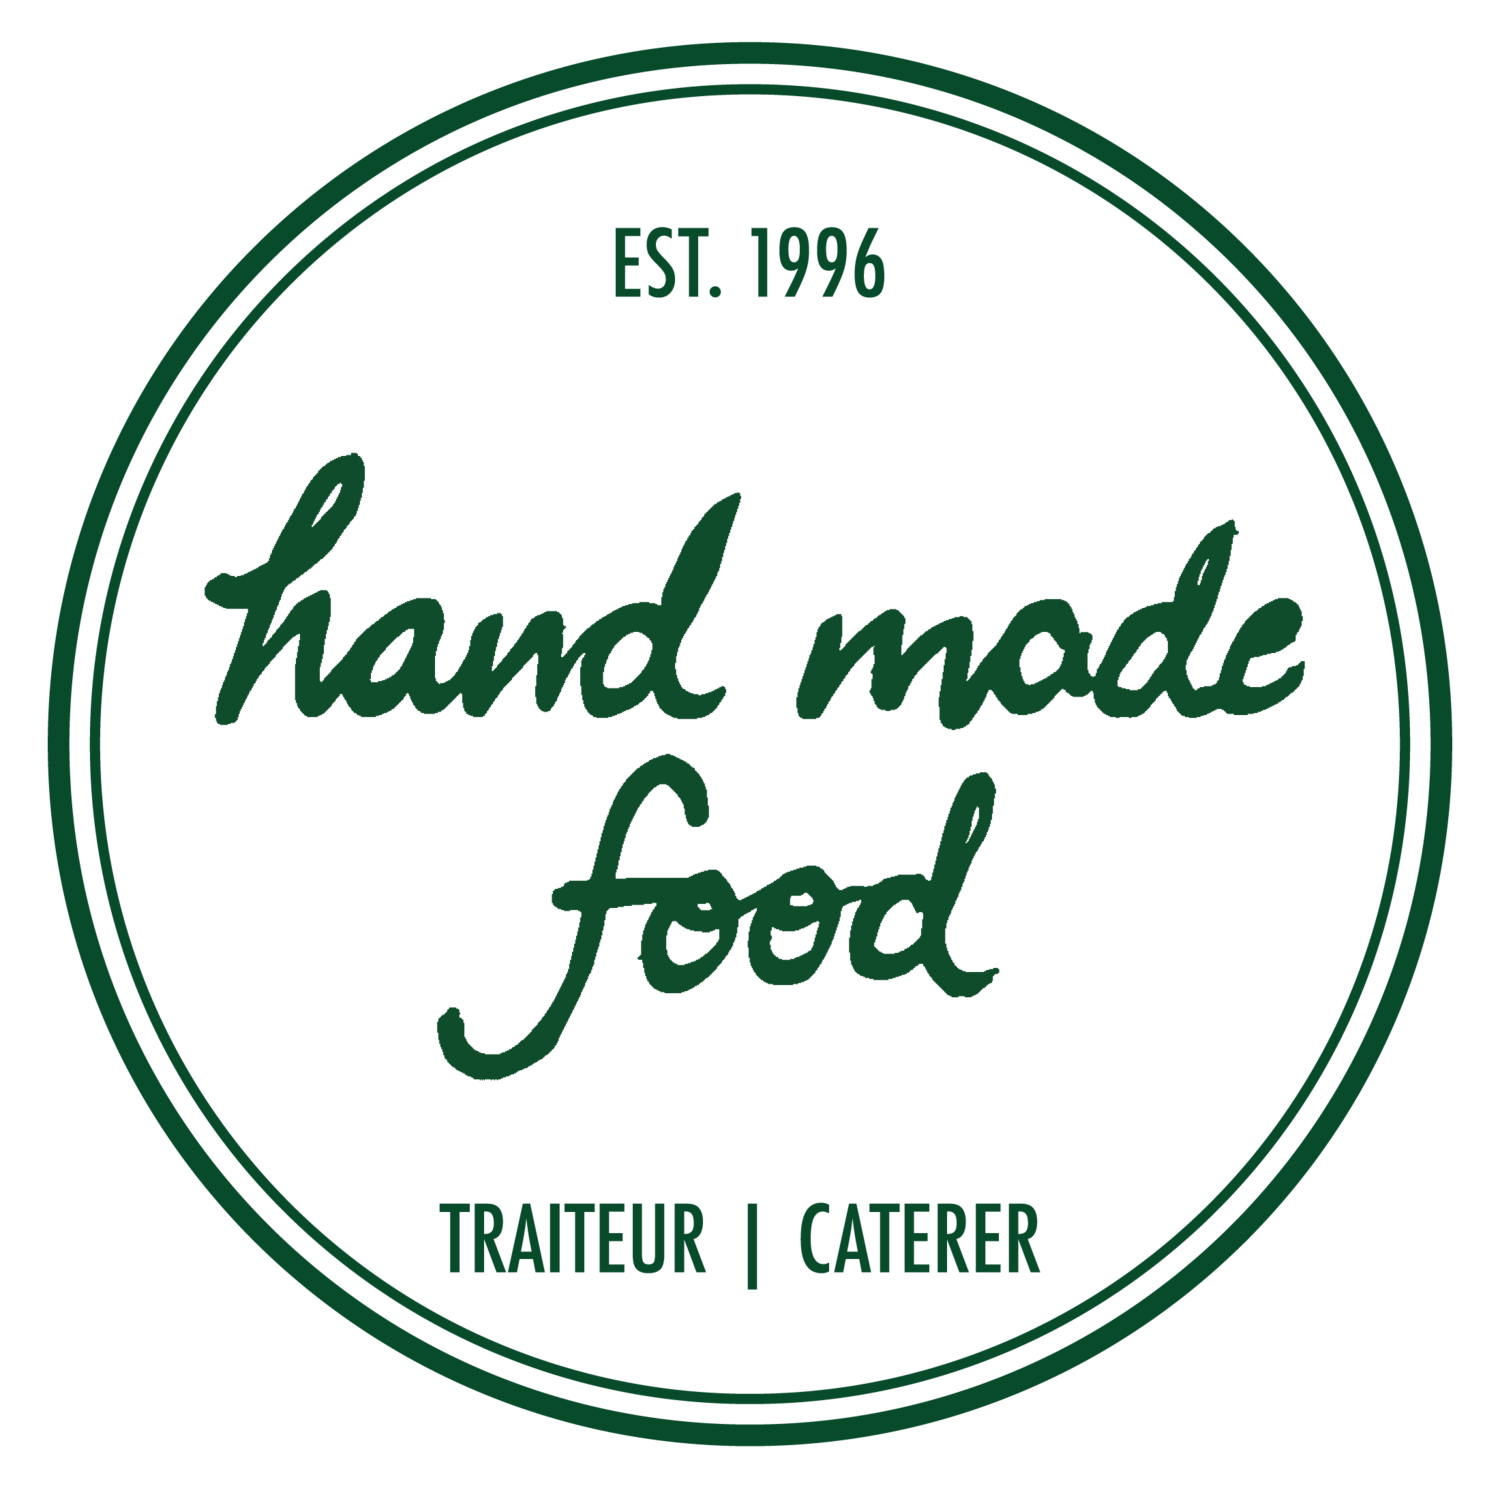 Hand Made Food | Traiteur | Caterer | Blackheath's best cafe/deli voted by TimeOut London | Breakfast | Lunch | Dinner